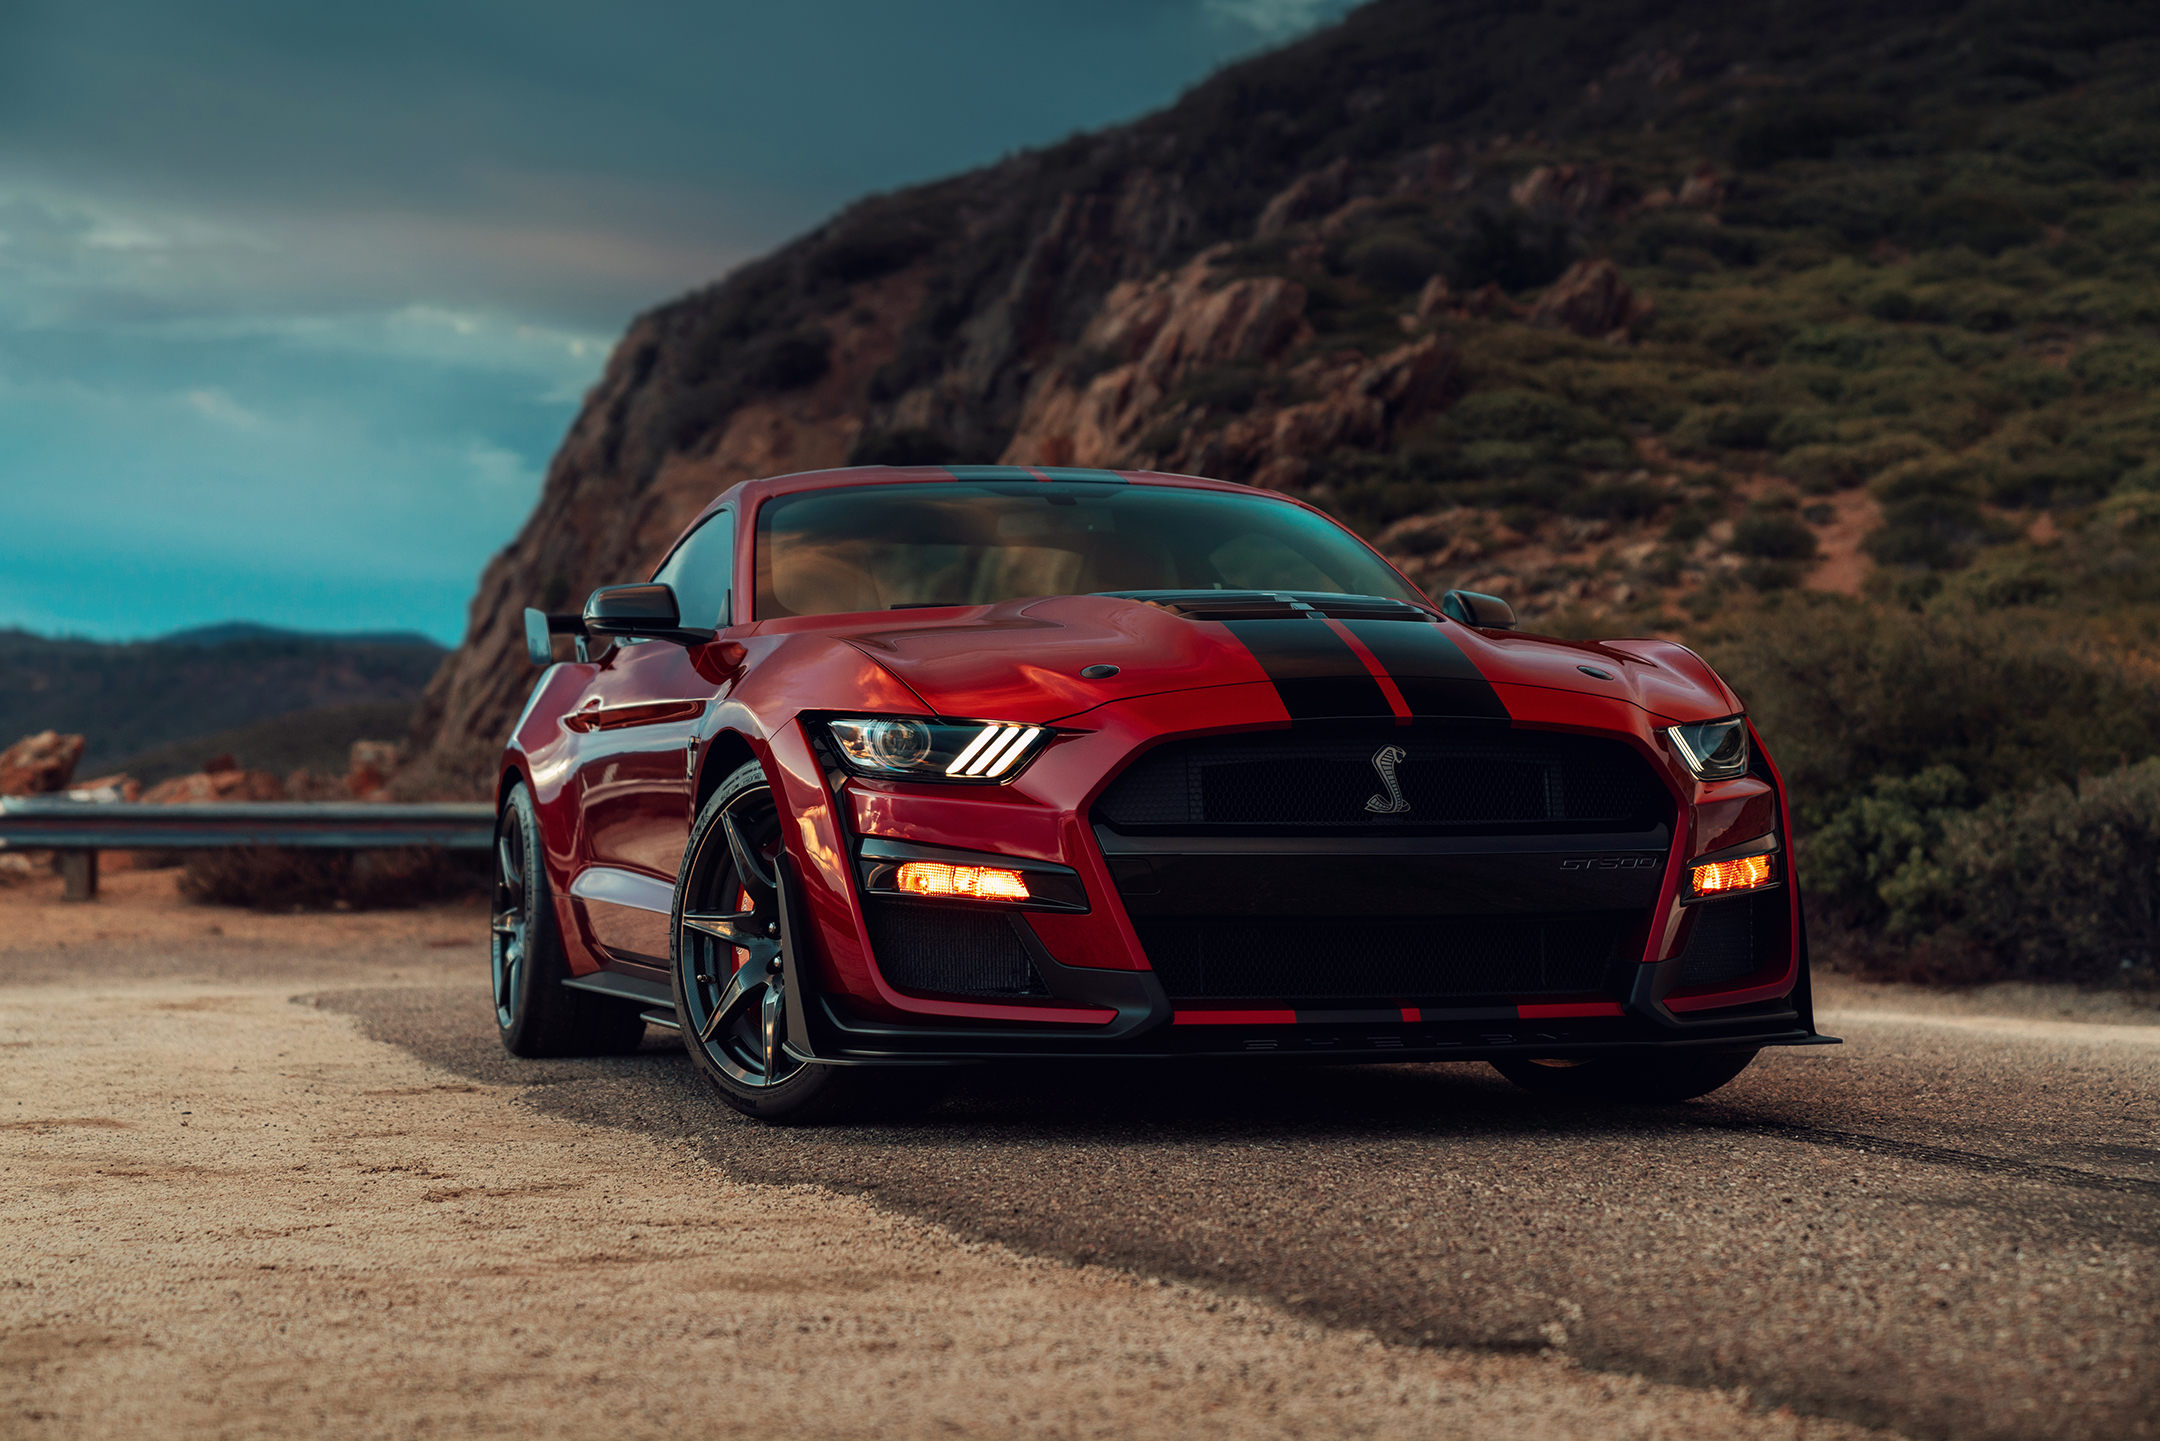 Ford Mustang 2020 Shelby GT500 - 2019 - front side-face / profil avant